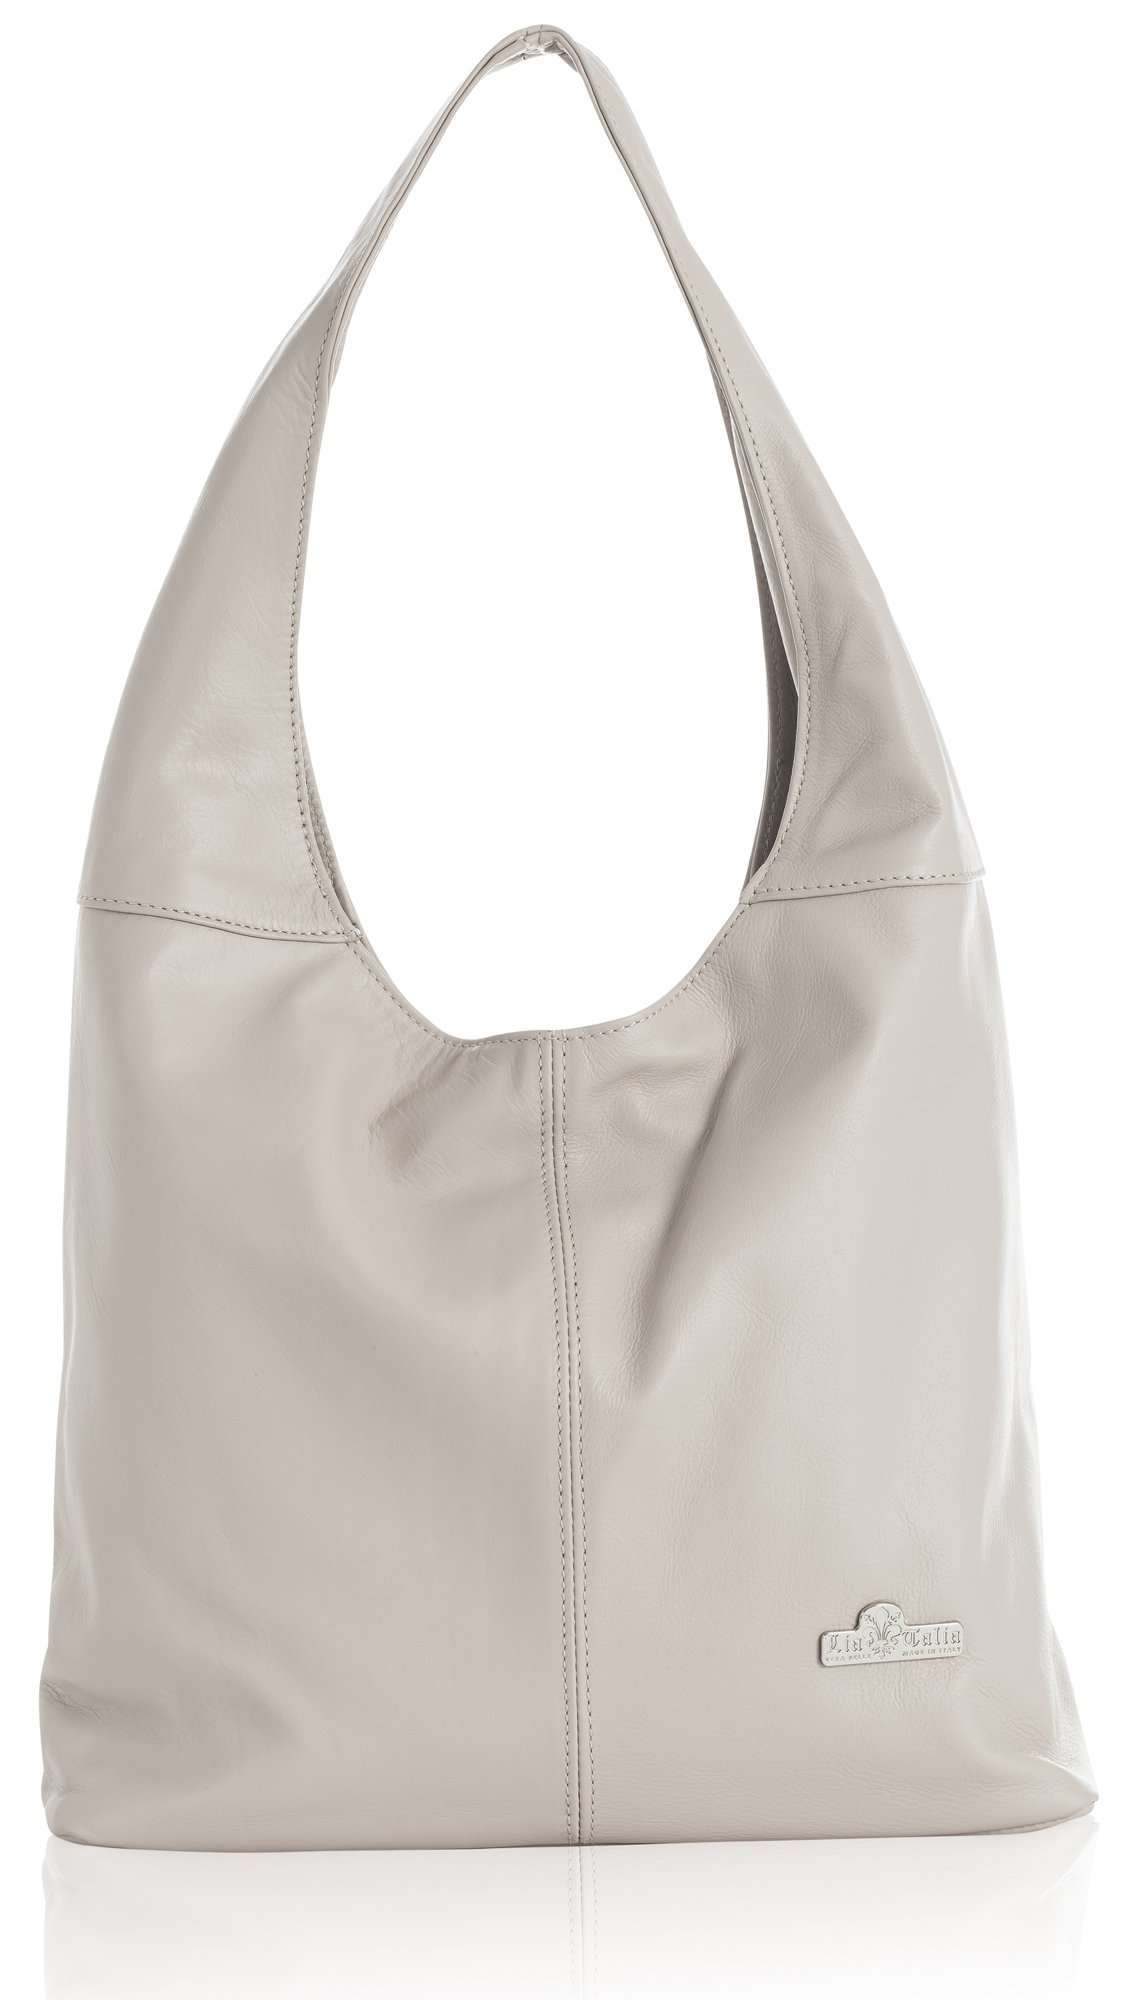 ''Olivia'' by LiaTalia Genuine Italian Soft Leather Medium Hobo Shopper Shoulder bag with Protective Dust Bag [Pale Pink] by LiaTalia Vera Pelle Made In Italy